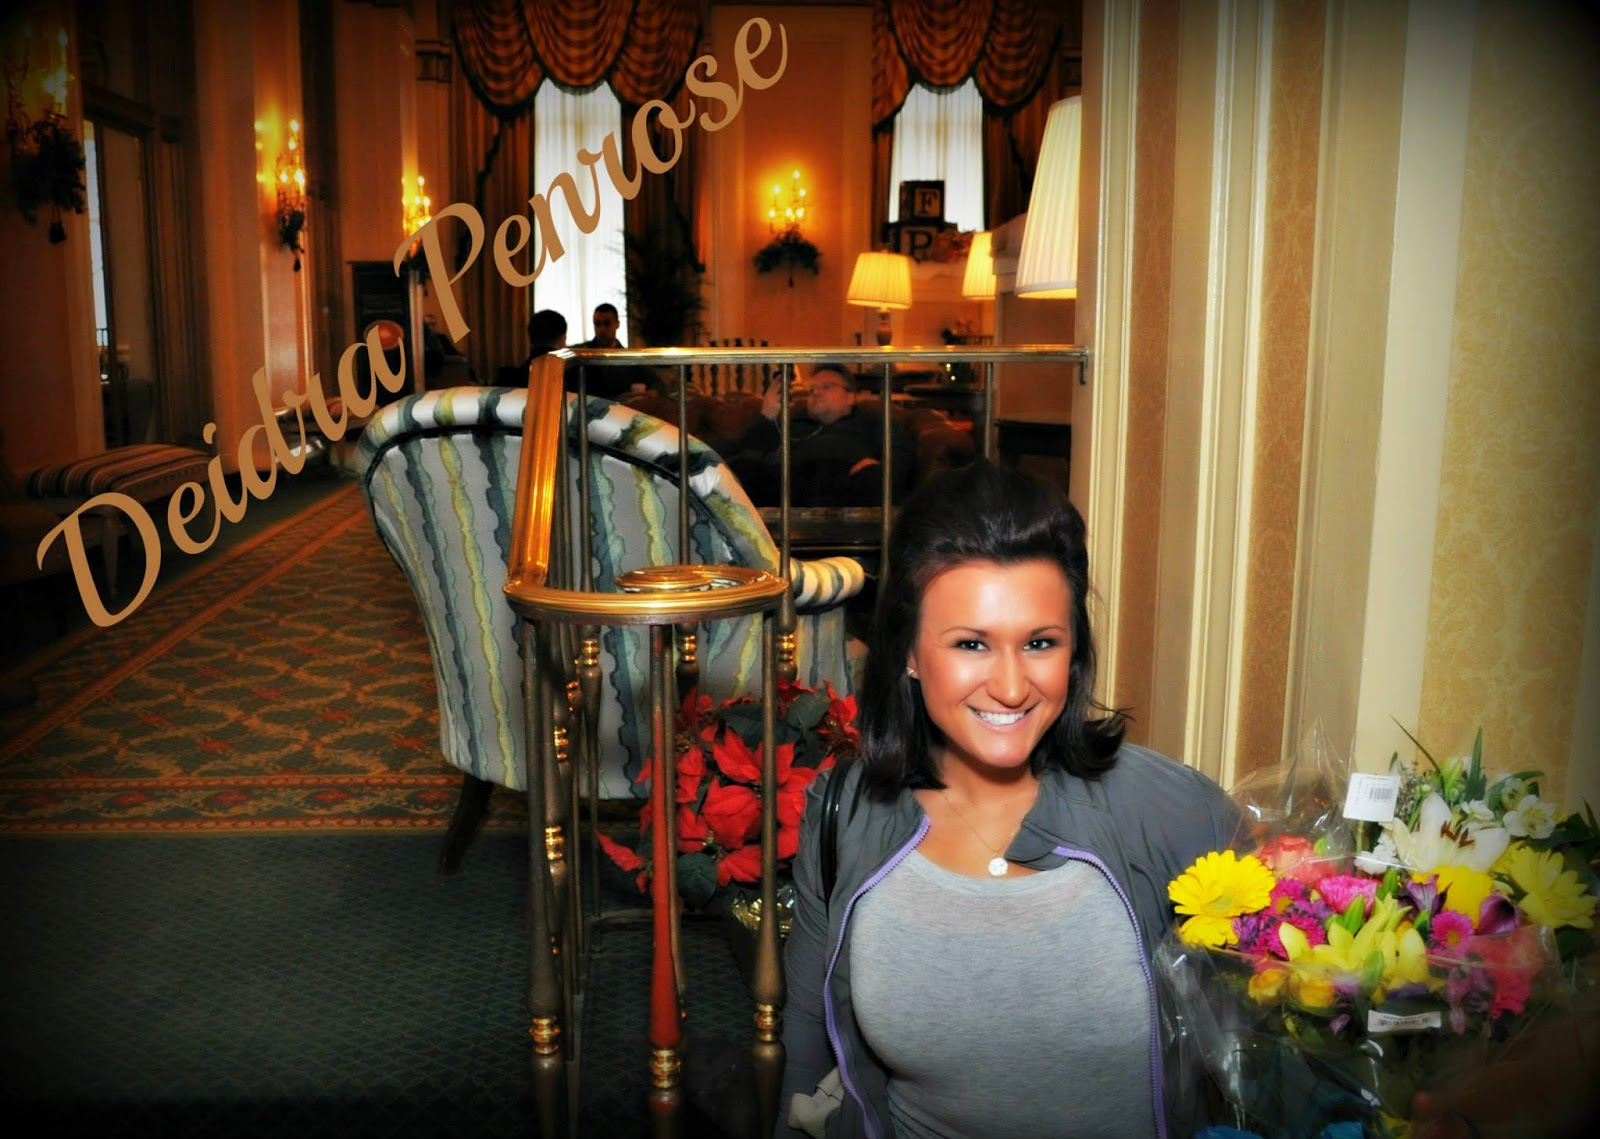 Deidra Penrose, inspiration, fitness motivation, fitness coach opportunity, nurse and fitness, healthy mom, stay at home mom job, new mom, Top fitness coach harrisburg beachbody, top beachbody coach pittsburgh, success health and fitness coach, super saturday beachbody pittsburgh, job opportunity, weight loss journey, fitness journey, financial freedom, helping others, end the trend obesity, super saturday pittsburgh pa